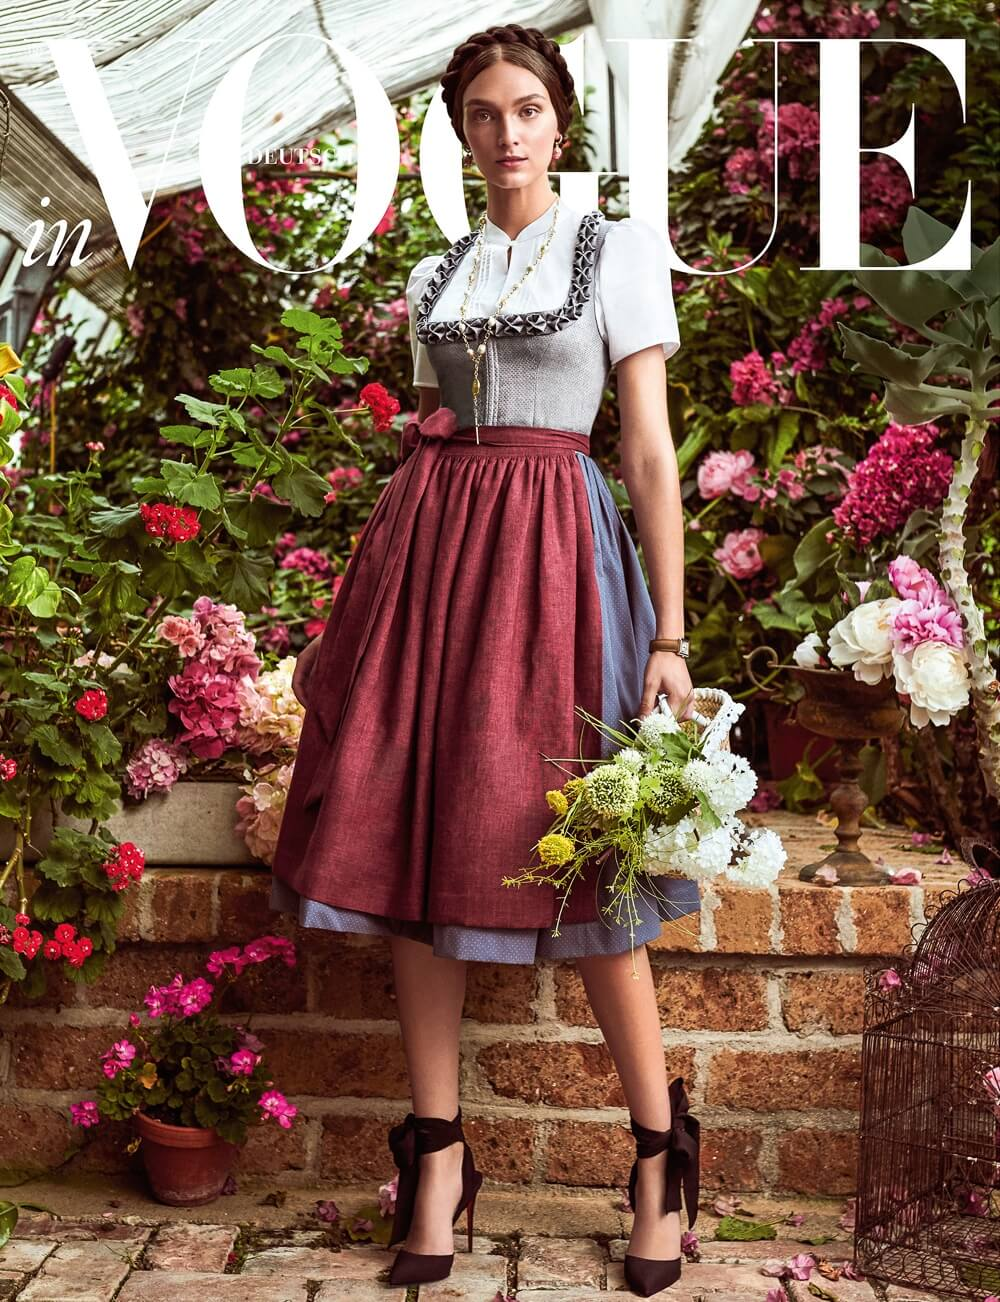 Vogue-Germany-August-2018-Deimante-Misiunaite-Andreas-Ortner-5